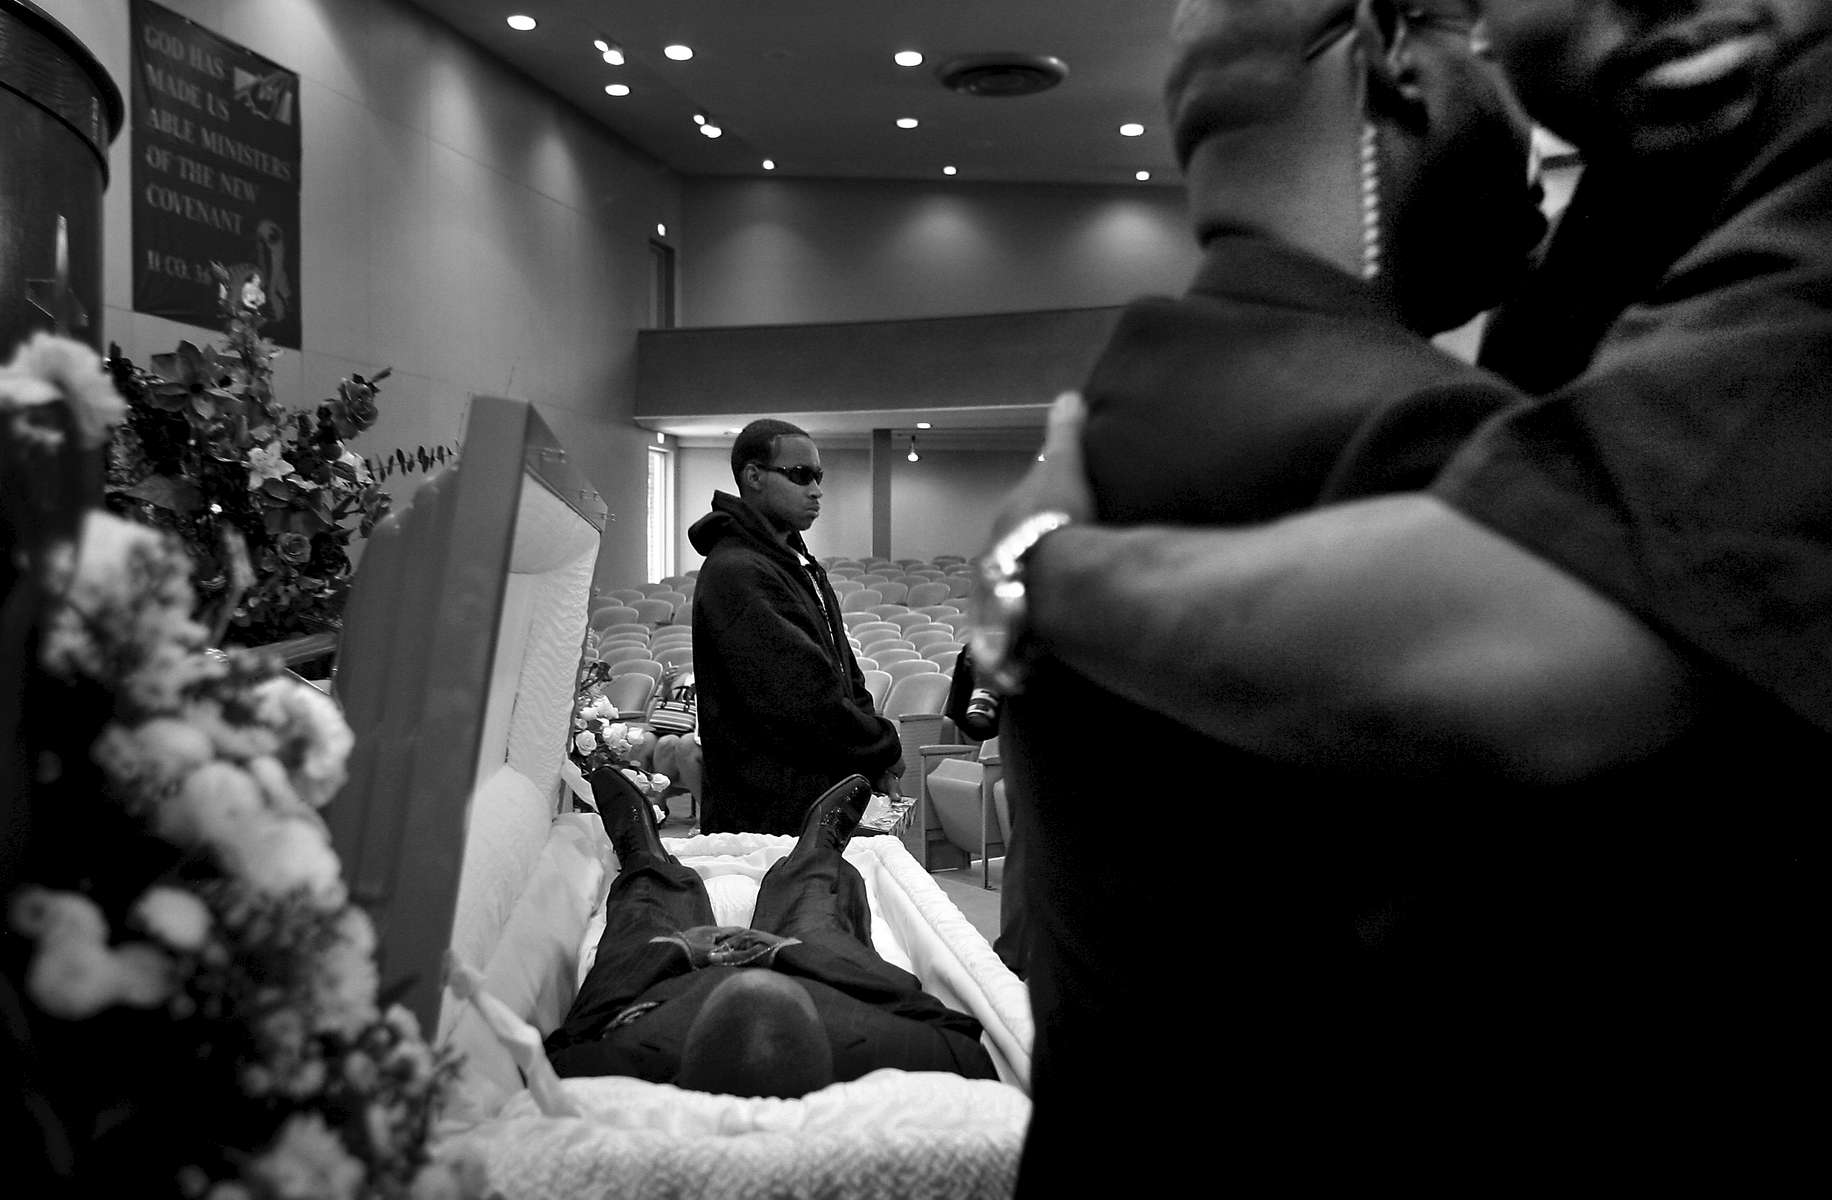 Former and current gang members and friends and family gather at New Covenant Christian Church for the funeral of Michael {quote}Sike{quote} Asberry in East Denver, Colo., on Saturday, May 24, 2008. Asberry was one of the founders of the Denver Crips.